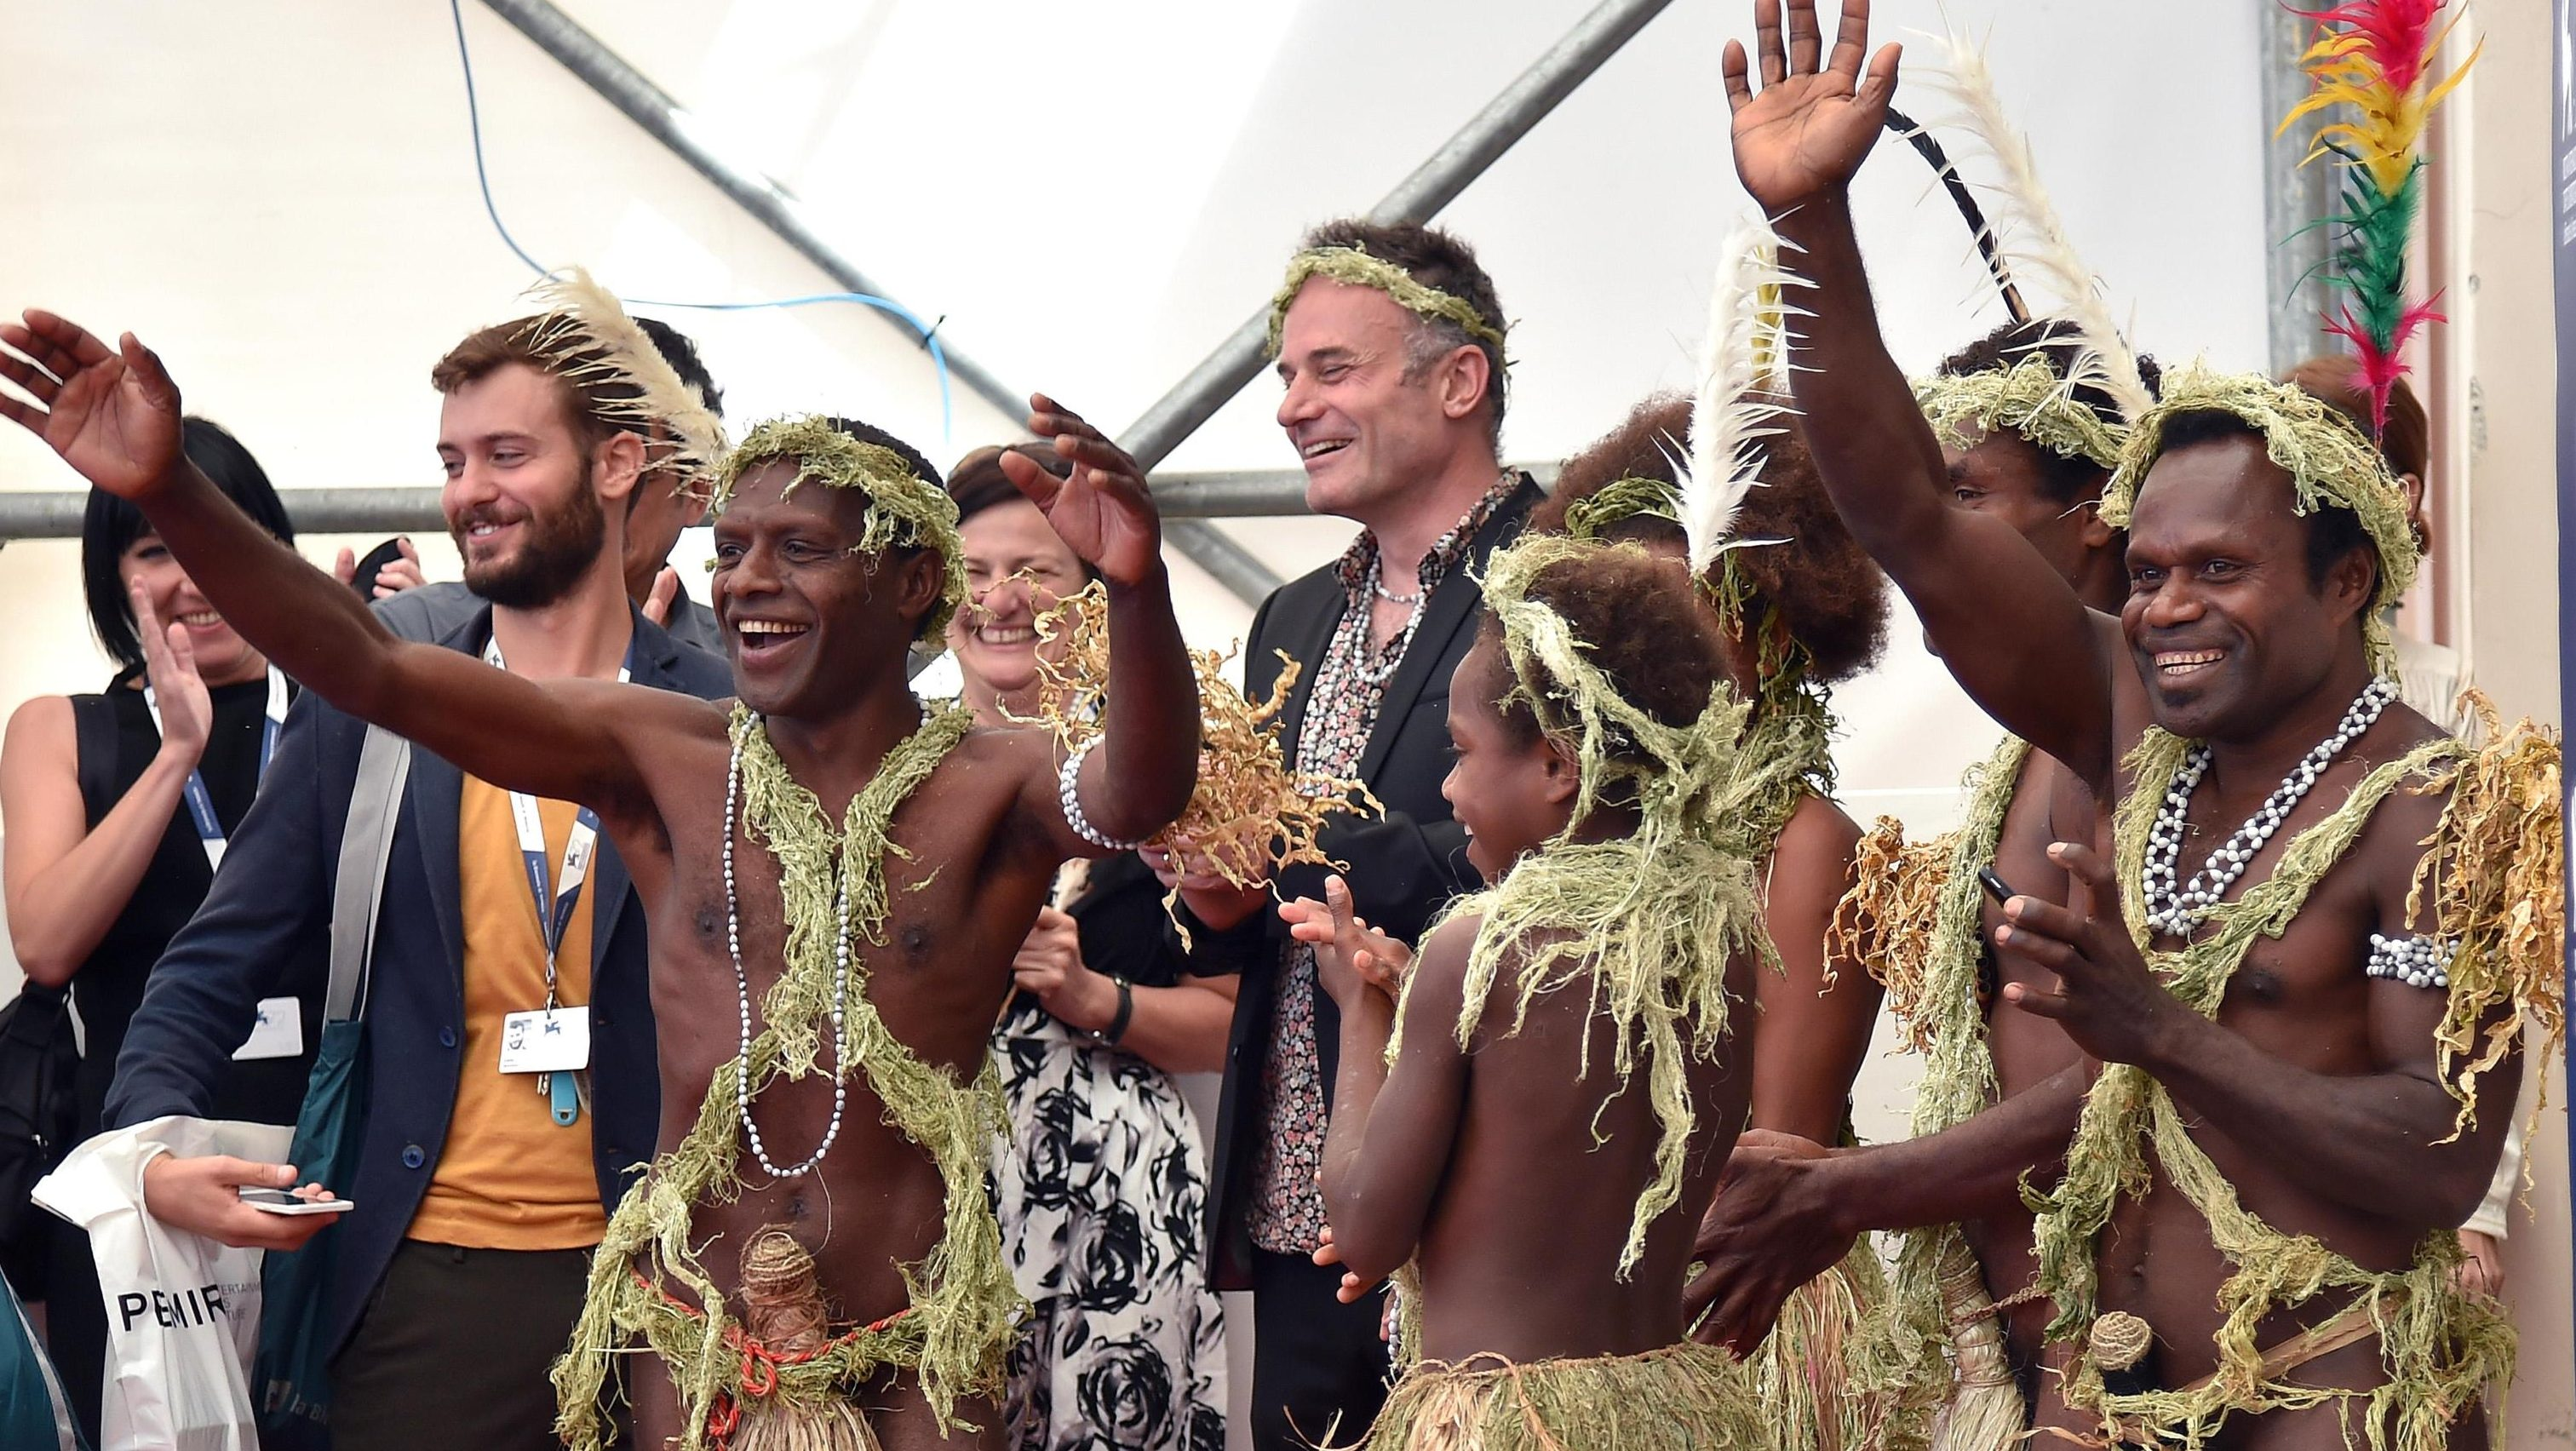 """Members of a tribe from Vanuatu island pose during the photocall of the movie """"Tanna"""" presented during the Film Critics Week at the 72nd annual Venice International Film Festival, in Venice, Italy, 08 September 2015. The festival which runs from o2 to 12 September."""